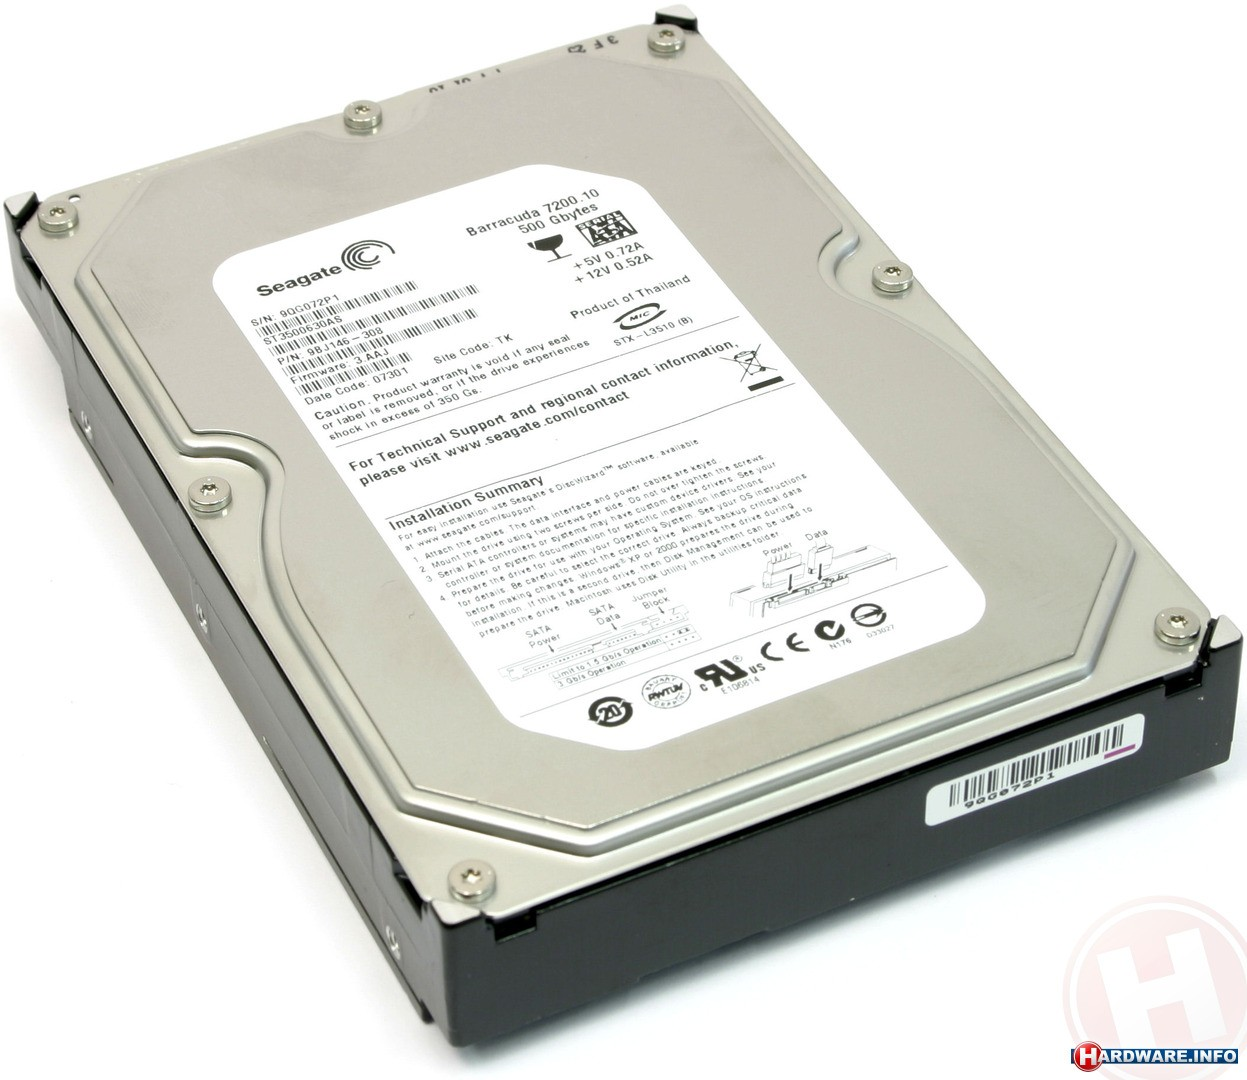 Diskwizard for seagate hard drive